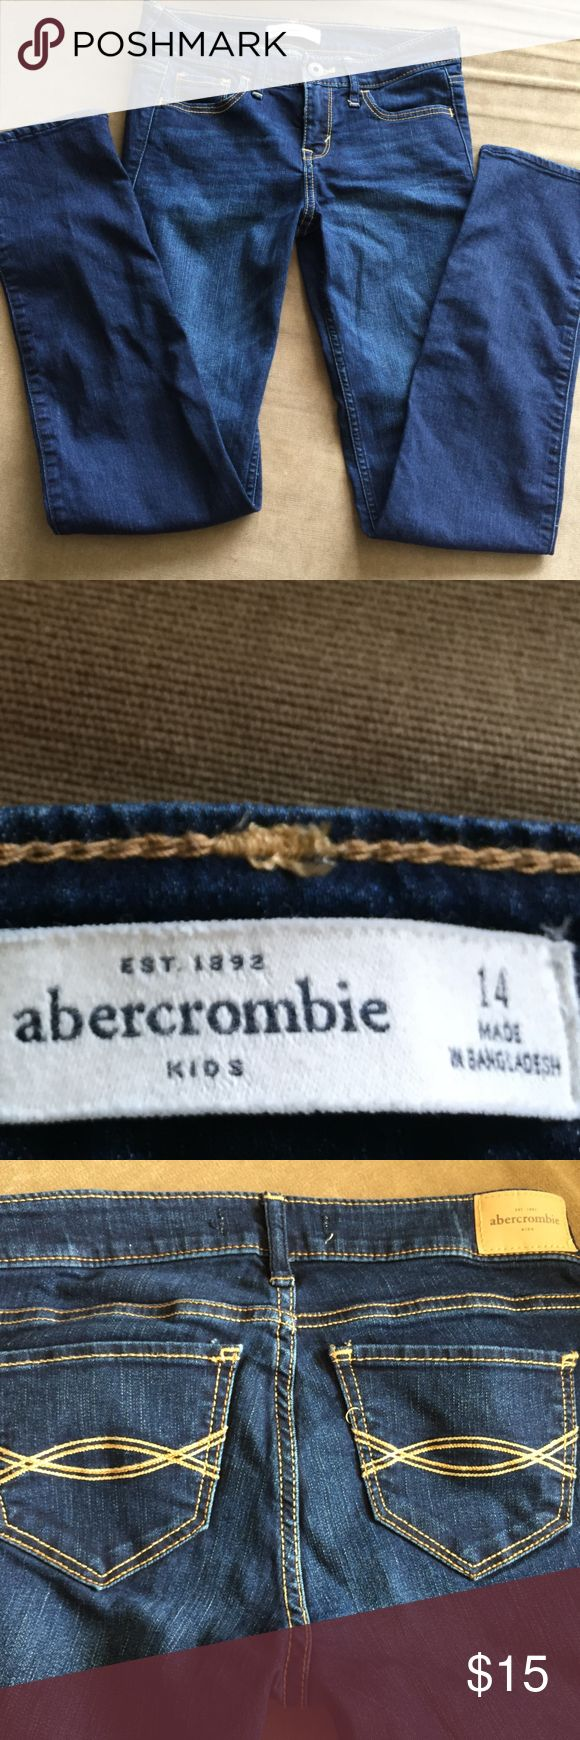 Abercrombie Girls Jeans Size 14 Abercrombie Girls Jeans Size 14  My daughter wore them twice. Perfect condition. No Fading, marks or Tares.  Pretty Cute! Abercombie Kids Jeans Skinny